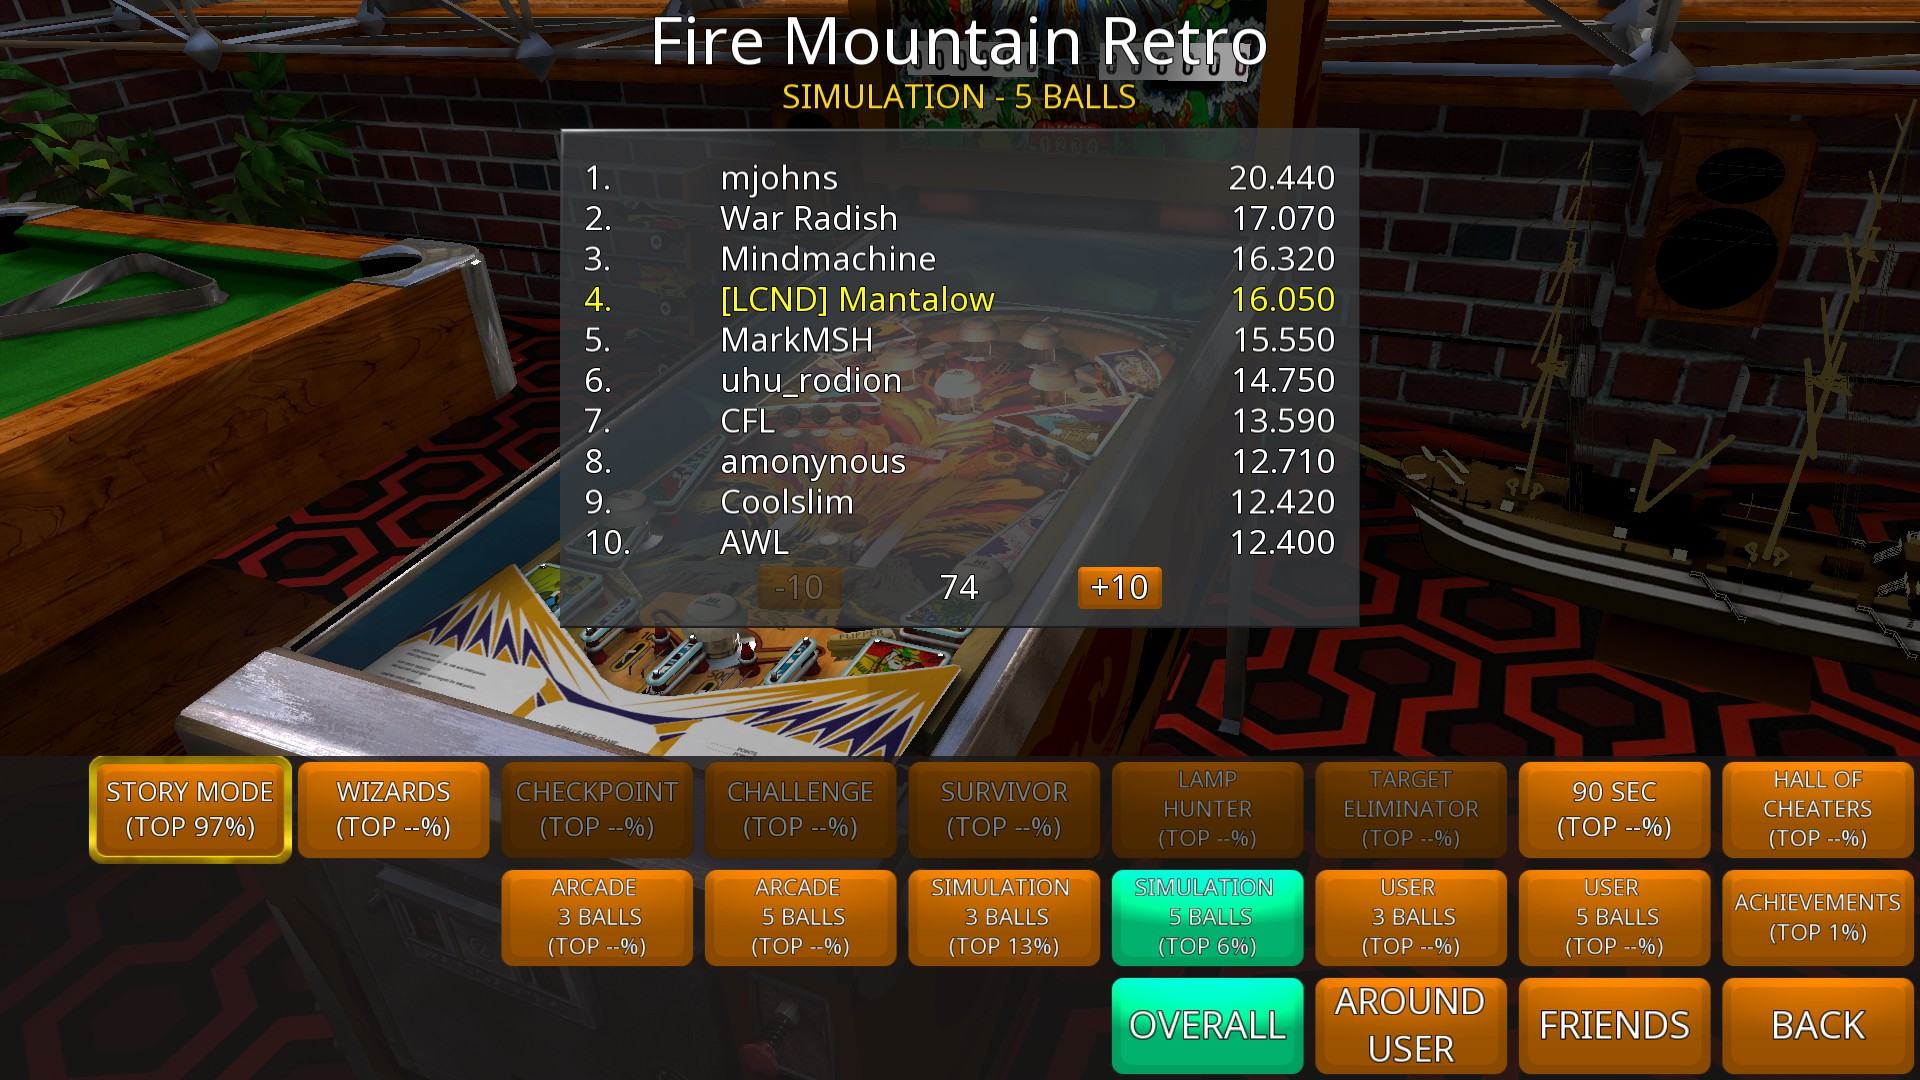 Mantalow: Zaccaria Pinball: Fire Mountain 2018 Retro [5 Balls] (PC) 16,050 points on 2018-09-17 01:44:39